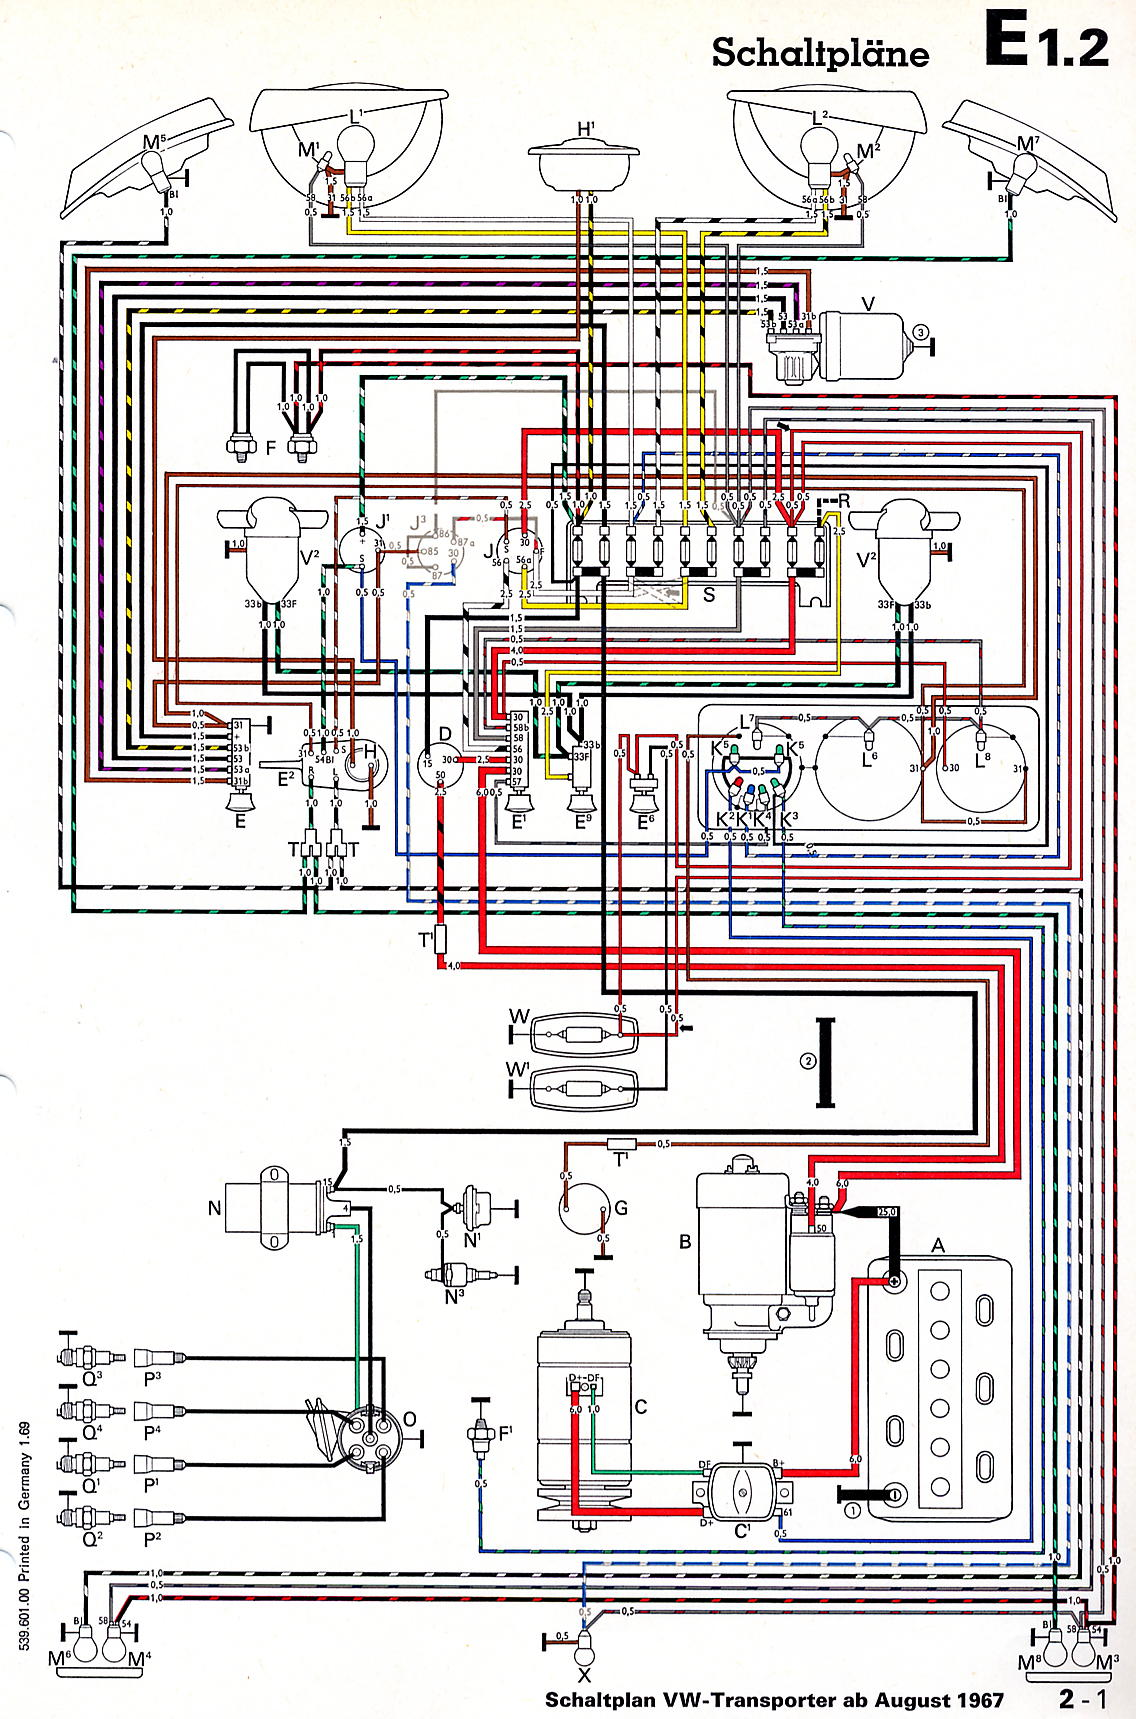 Vw Bus And Other Wiring Diagrams 2005 Mazda 6 Electrical Diagram Com